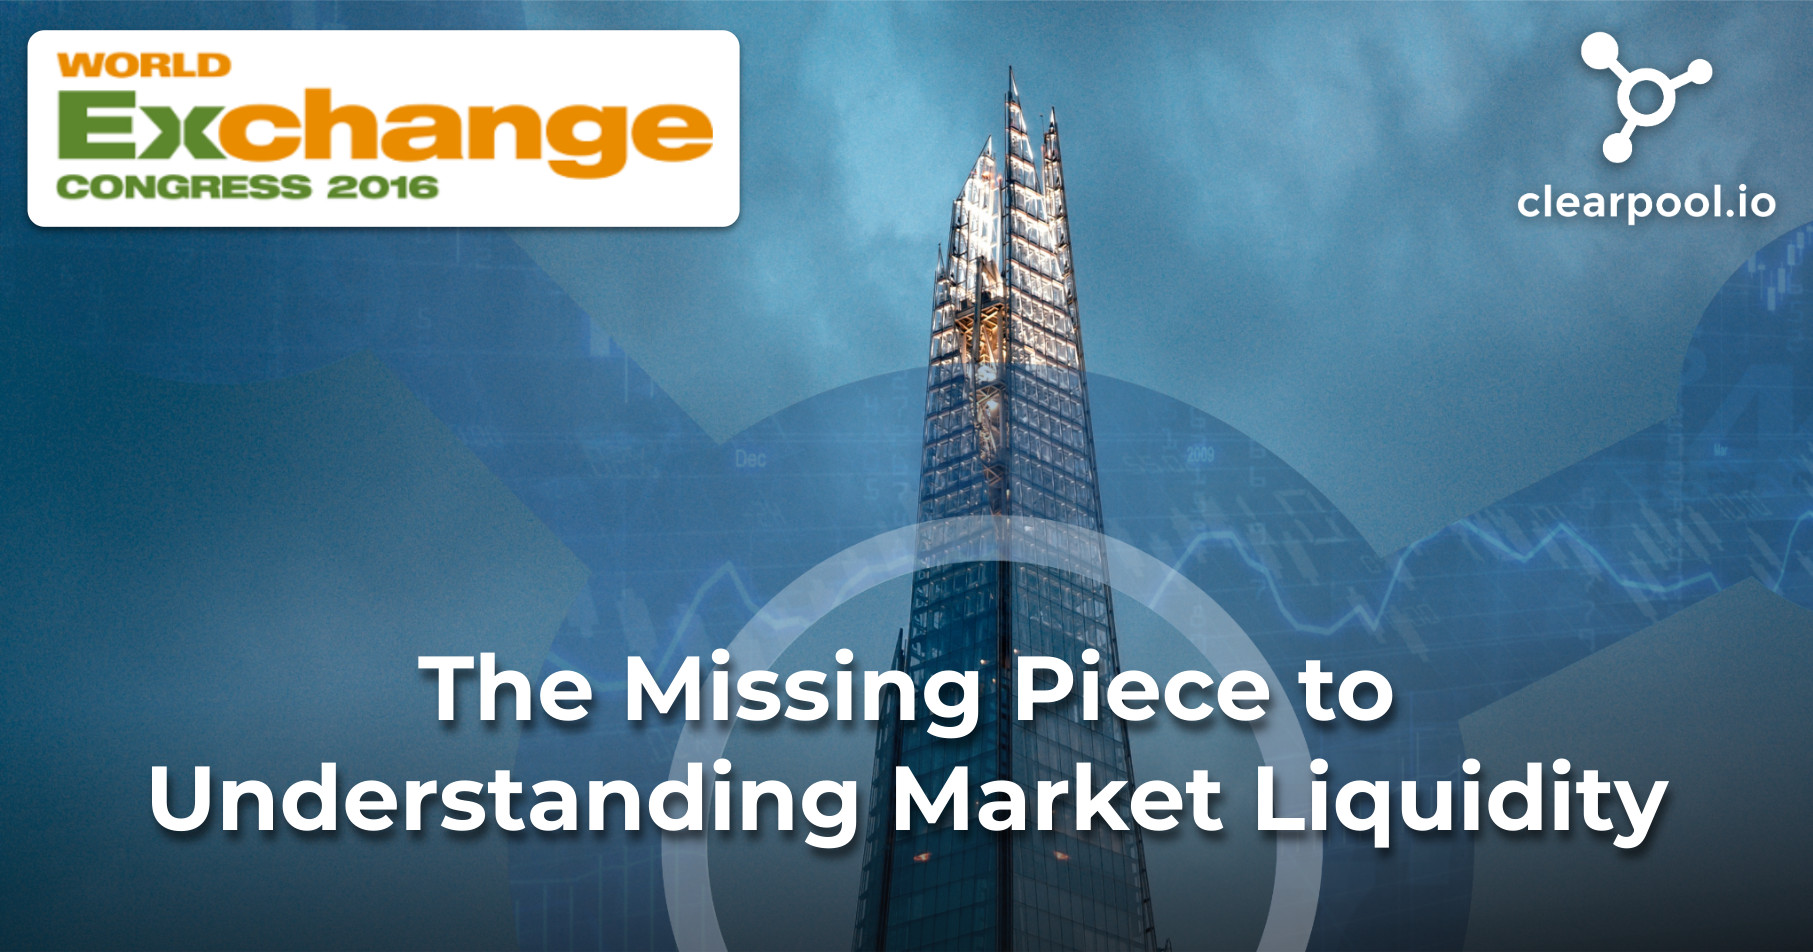 The Missing Piece to Understanding Market Liquidity